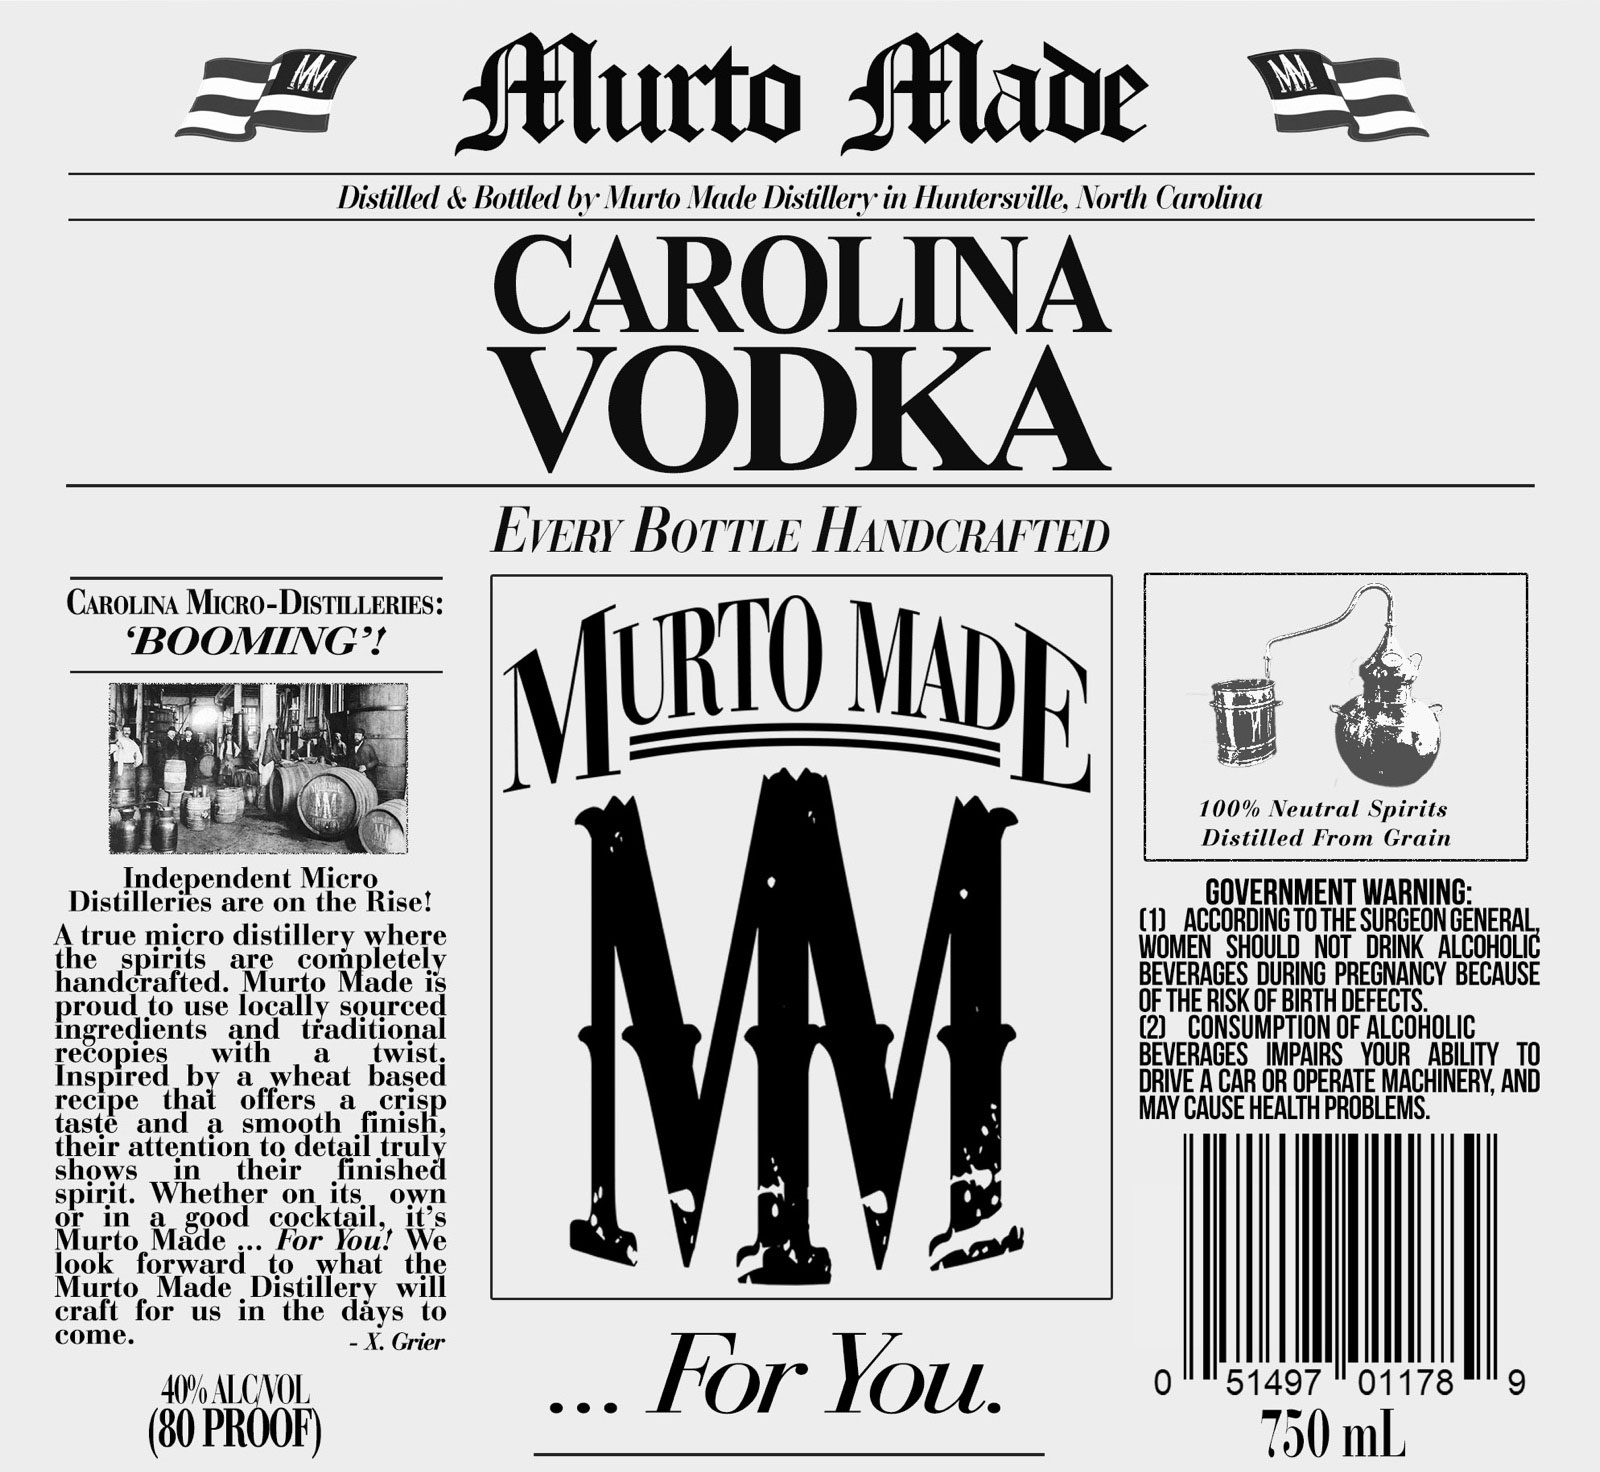 murto-made-distillery-label